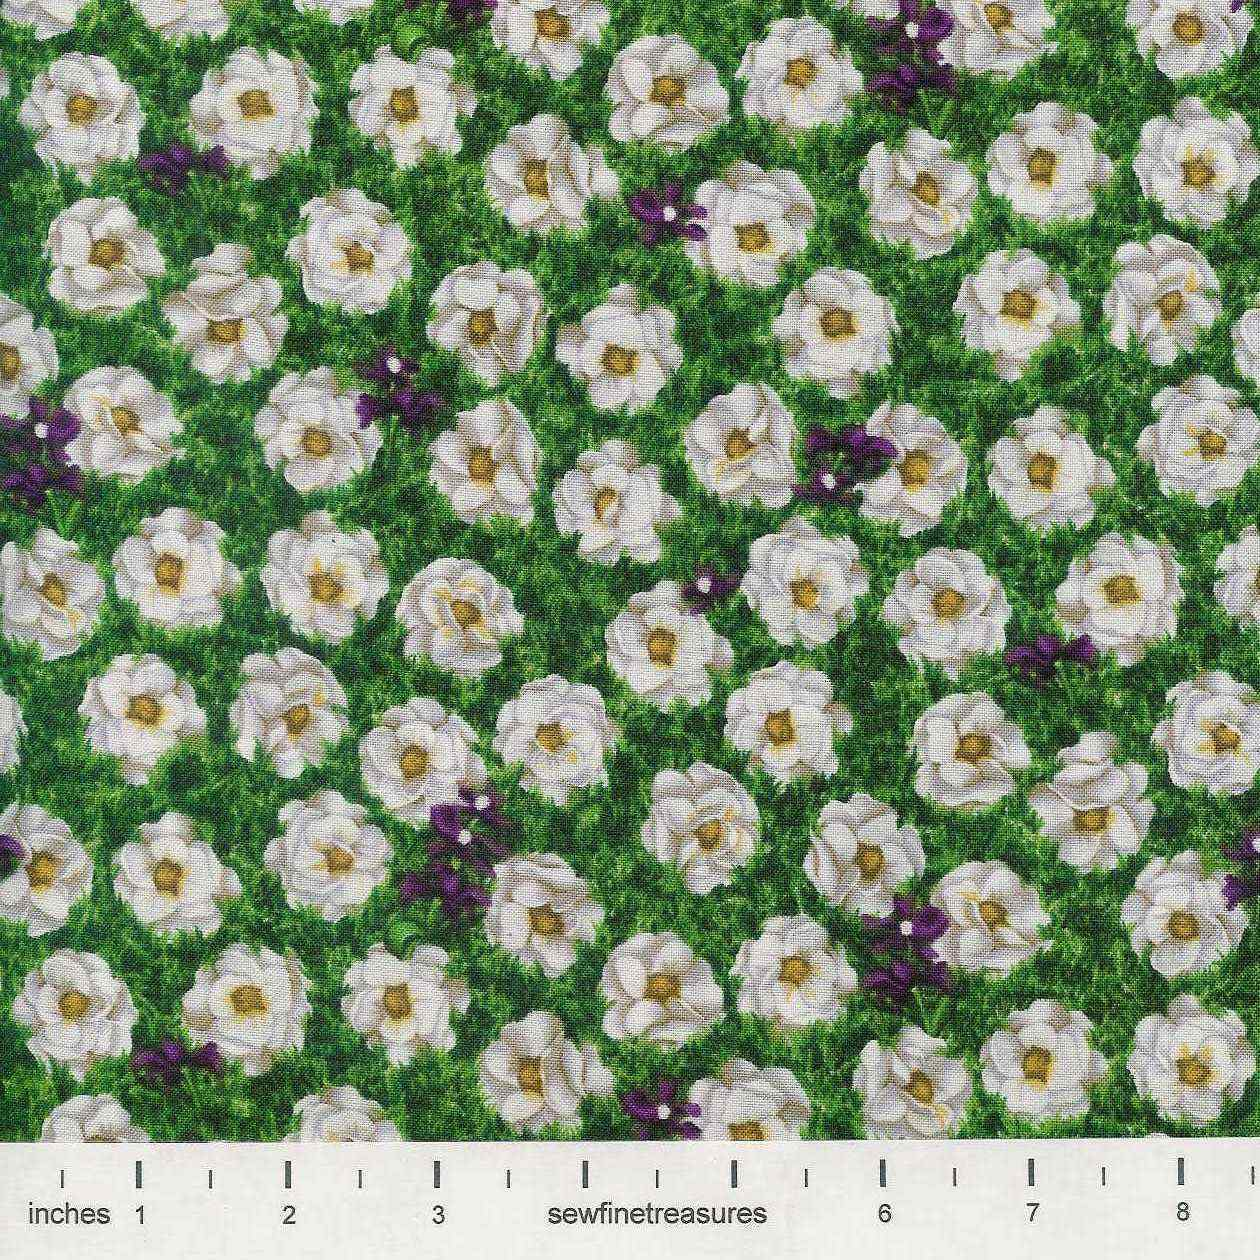 The Wizard Of Oz White Poppies Flowers Poppy Green Oop Fabric By The